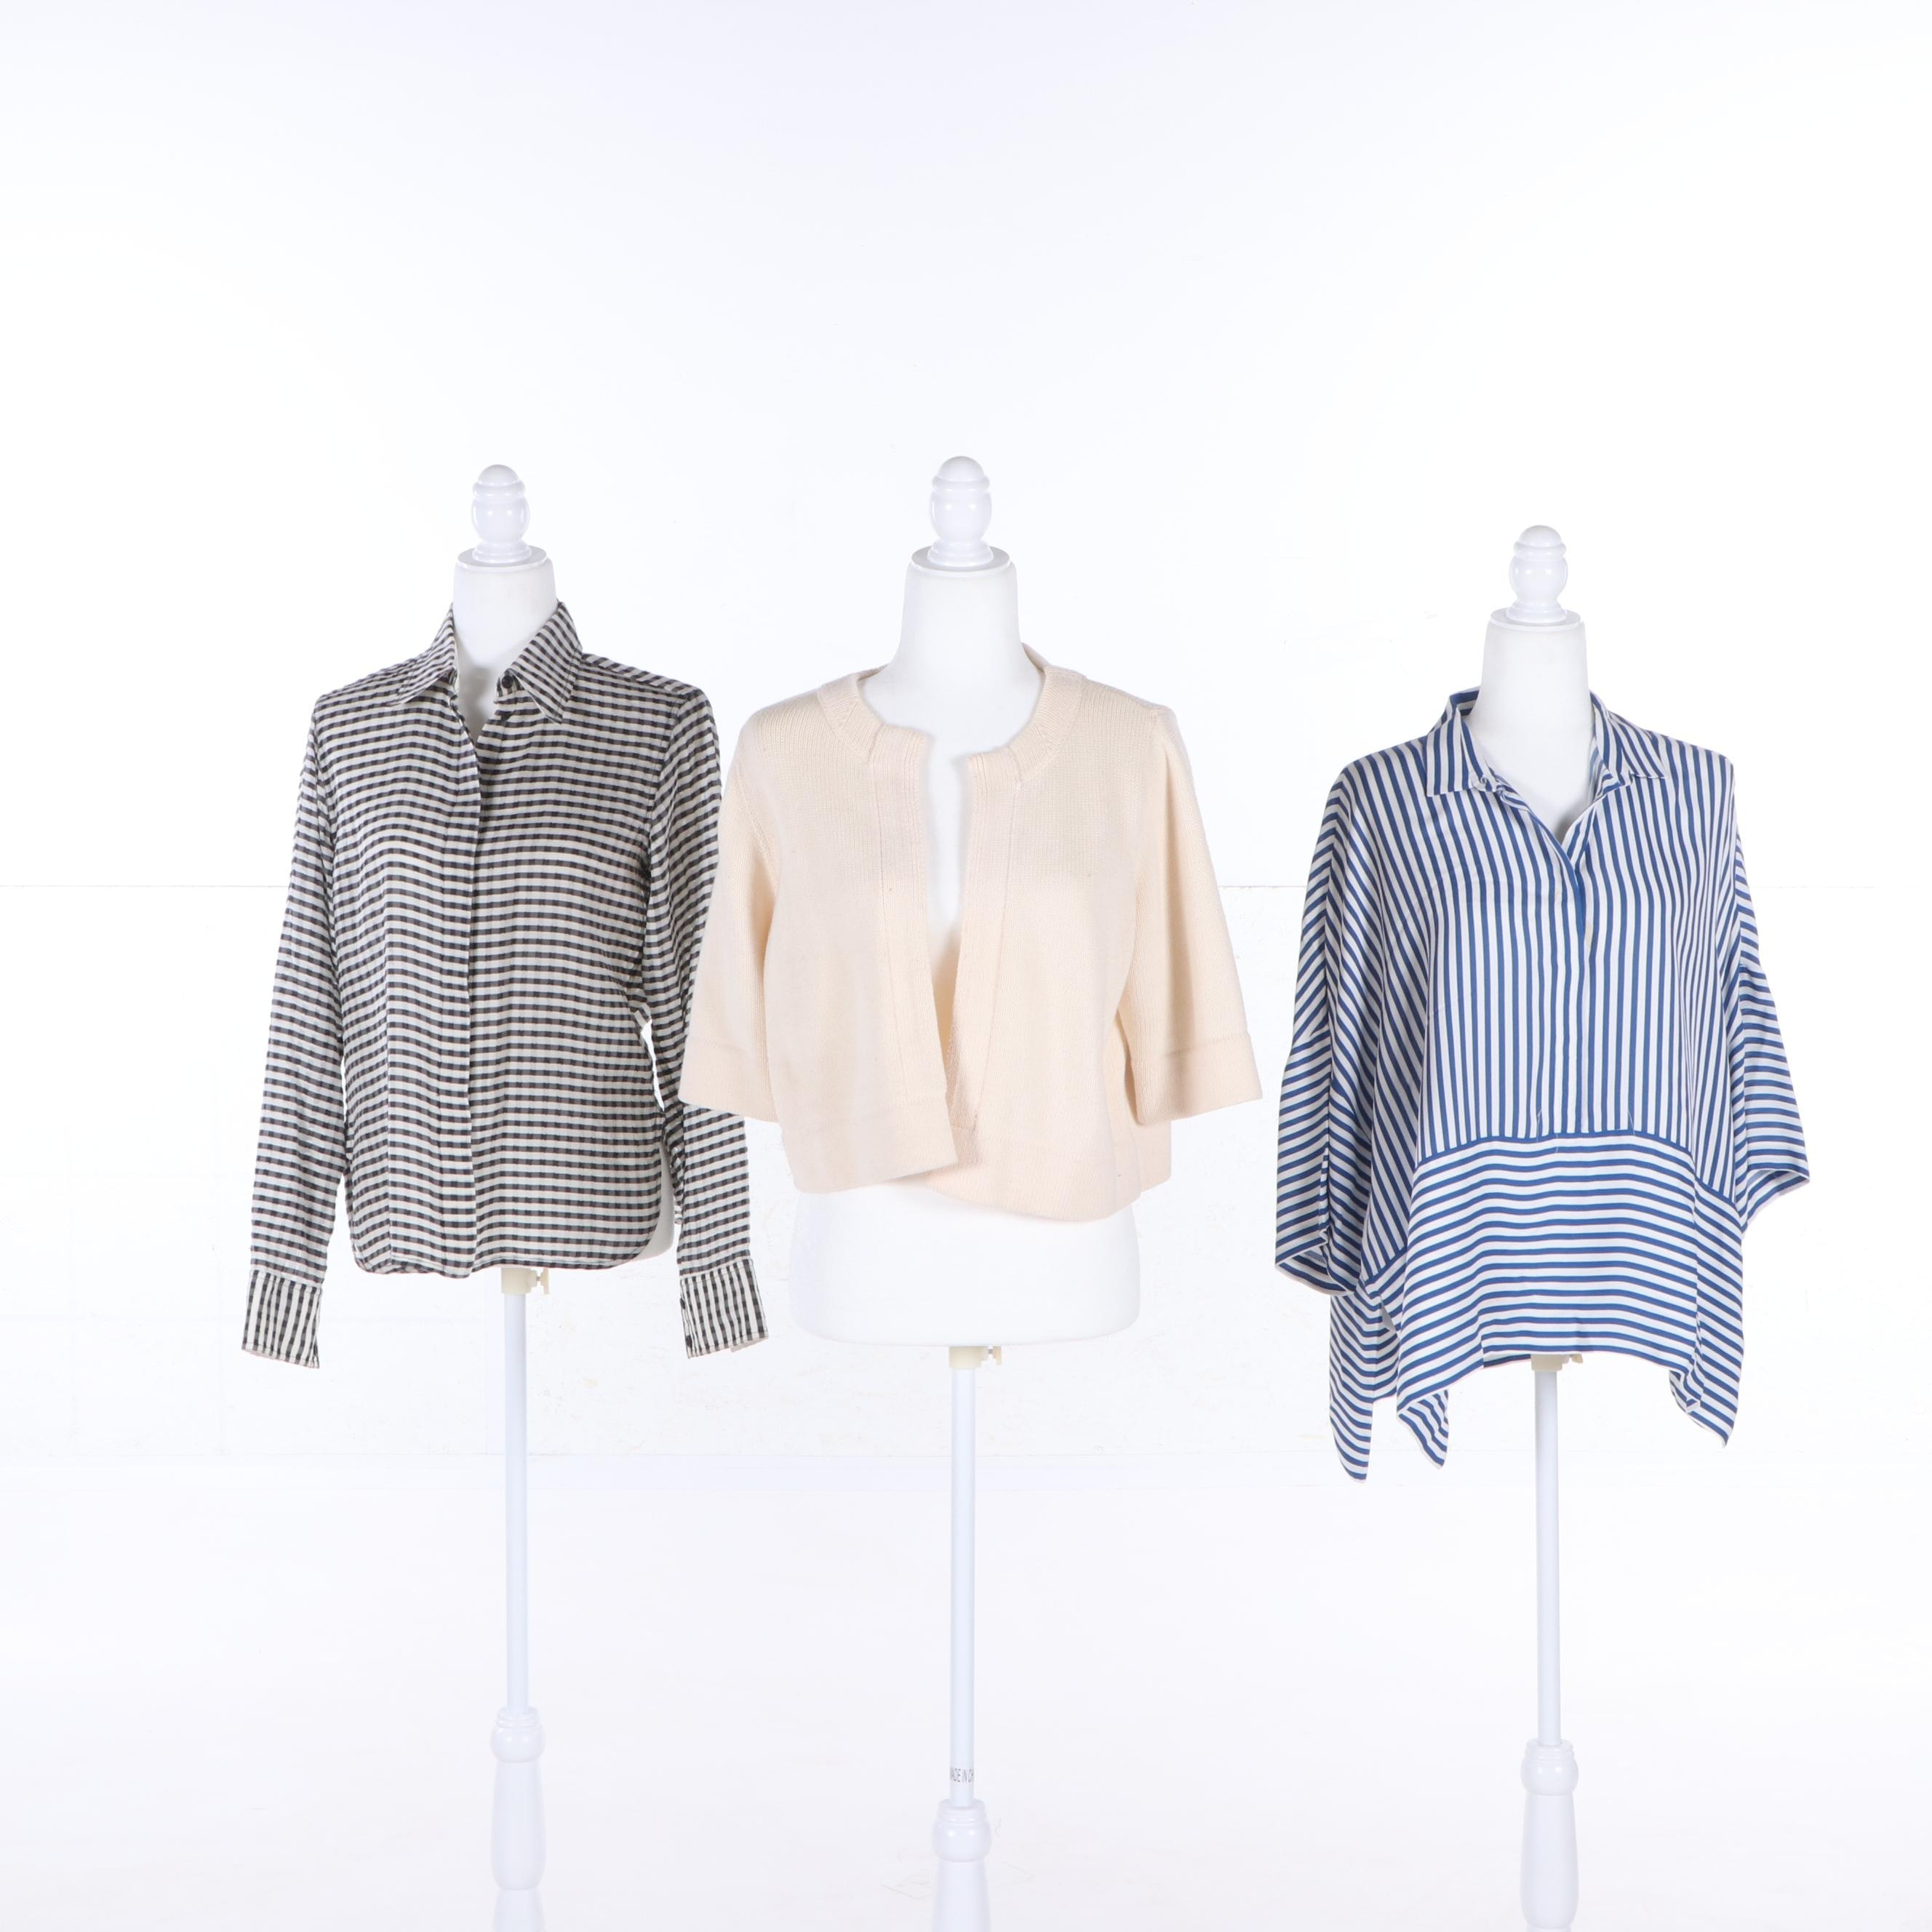 Women's Céline, Piazza Sempione and Akris Punto Shirts and Open Front Jacket